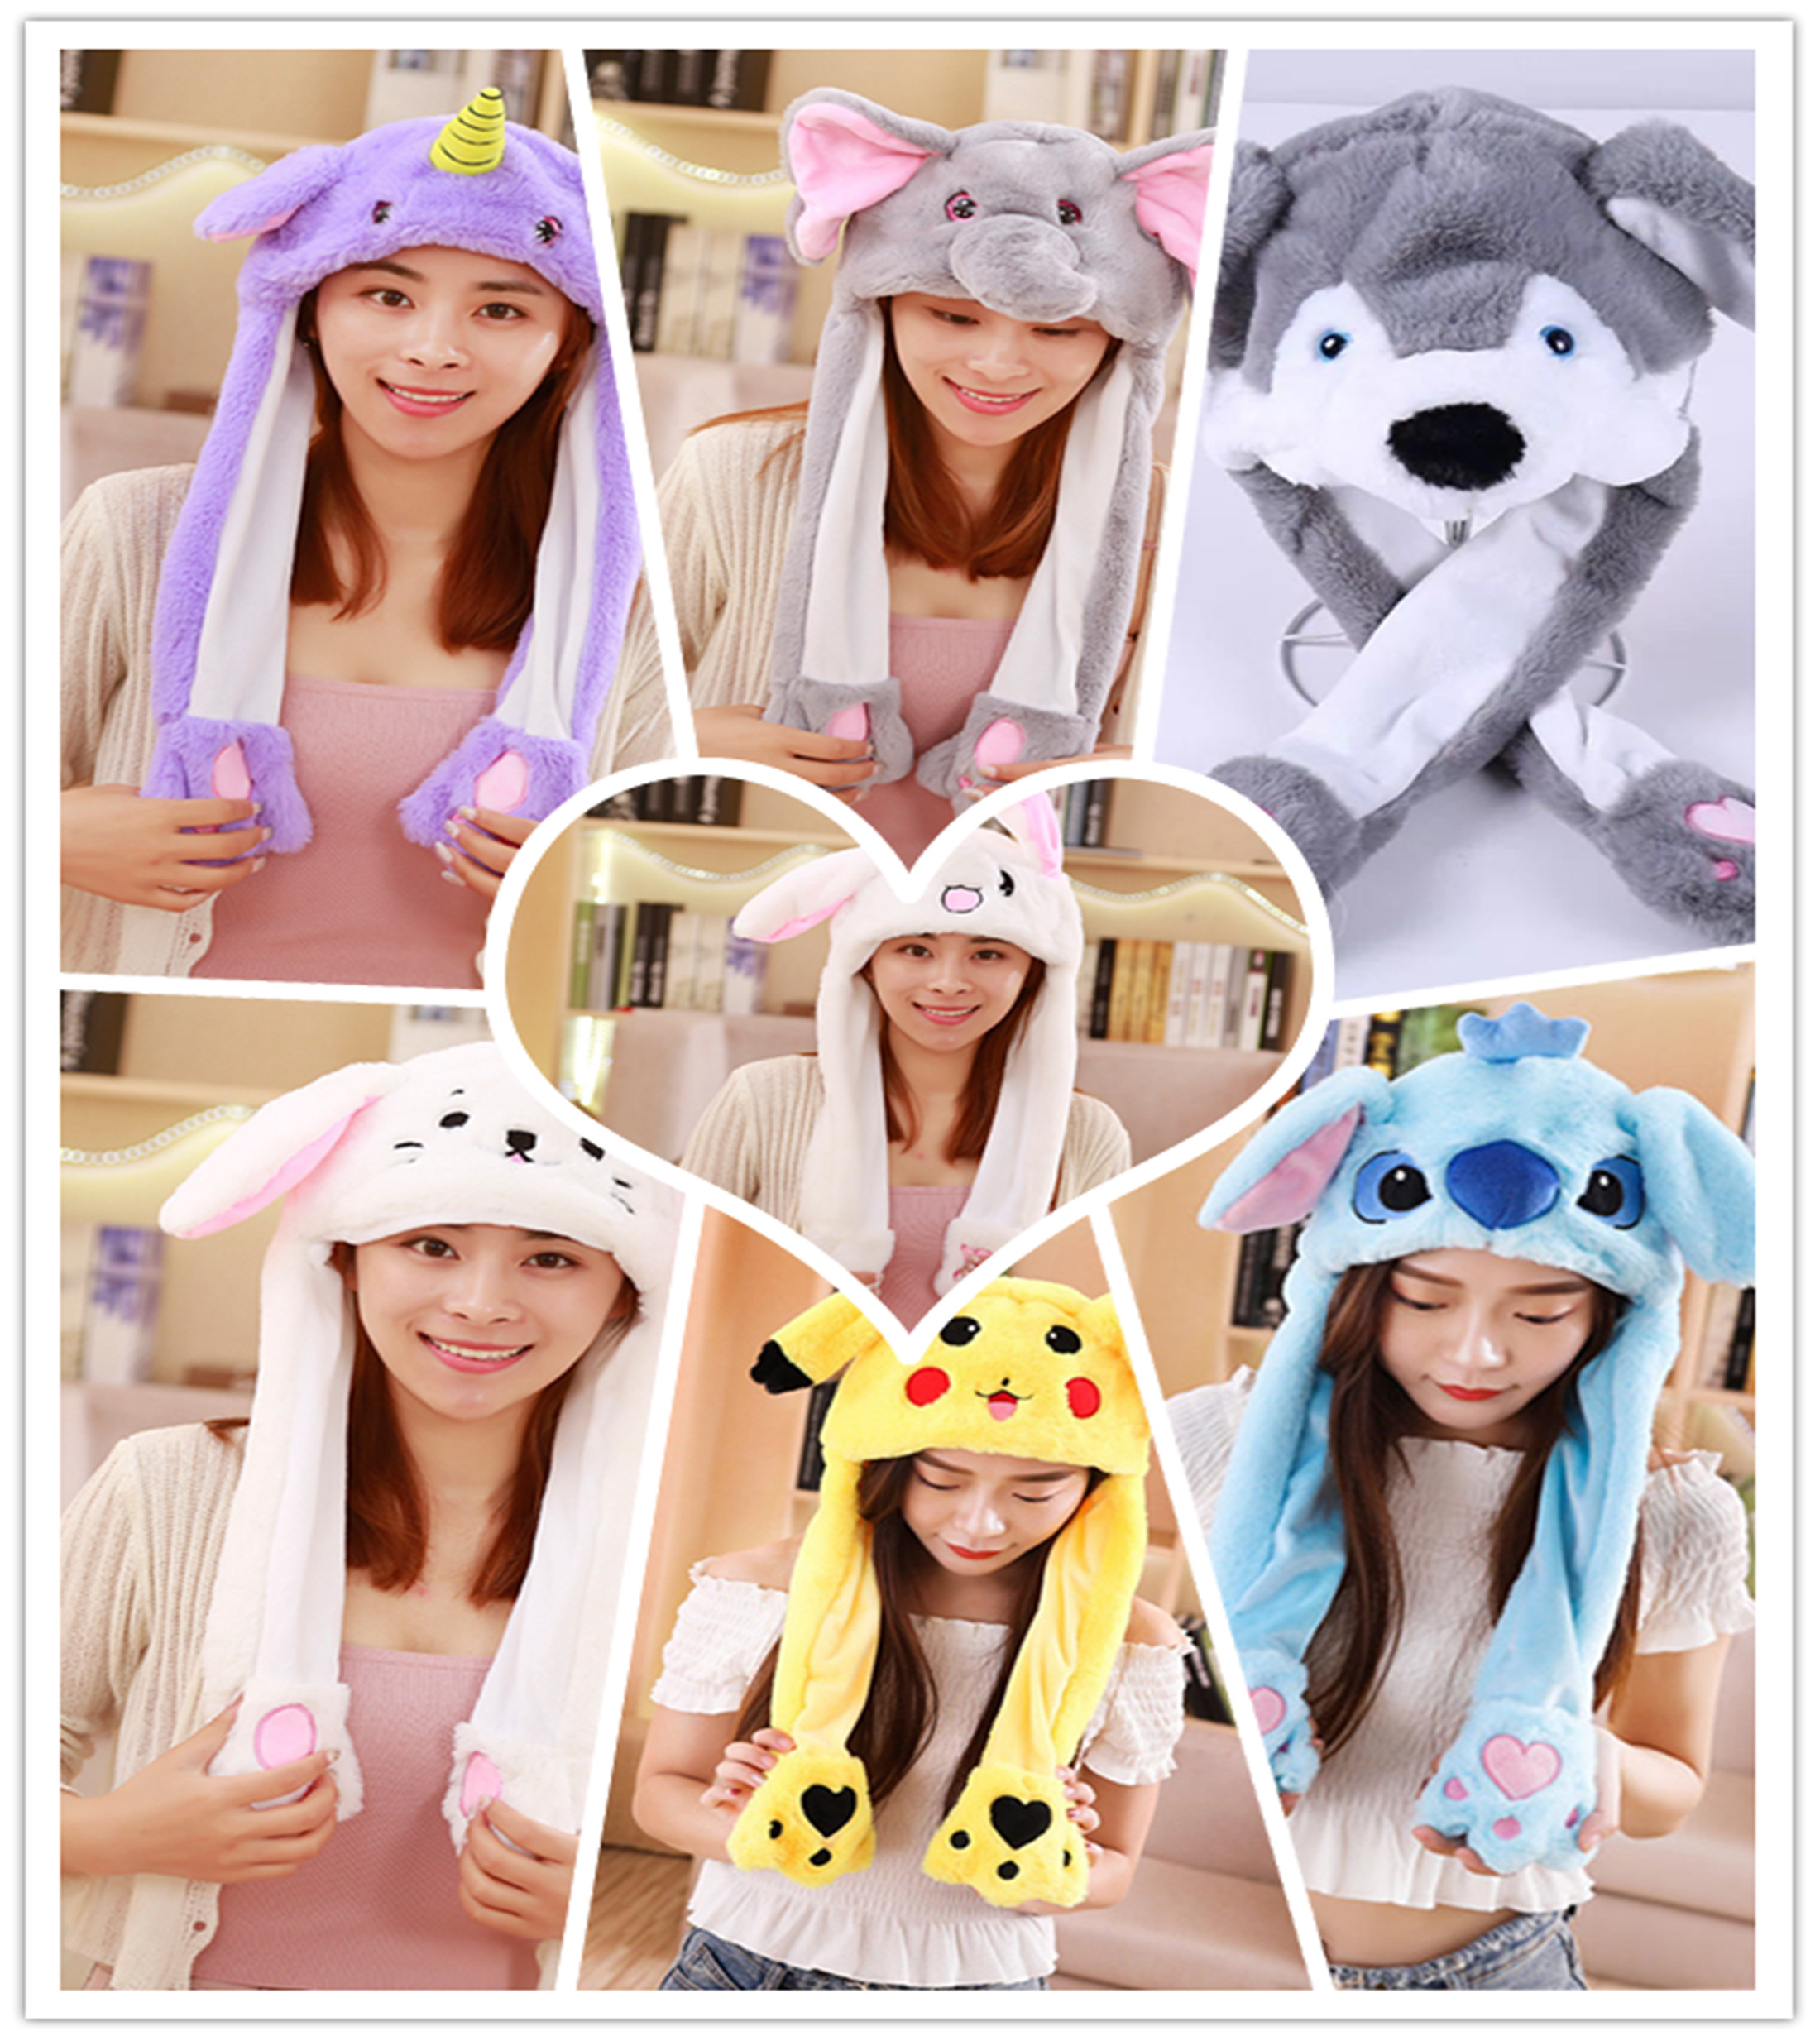 Hat Rabbit-Hat Birthday-Gift Moving Funny Kids Kawaii Ears Girls Cute Cartoon for Toy title=